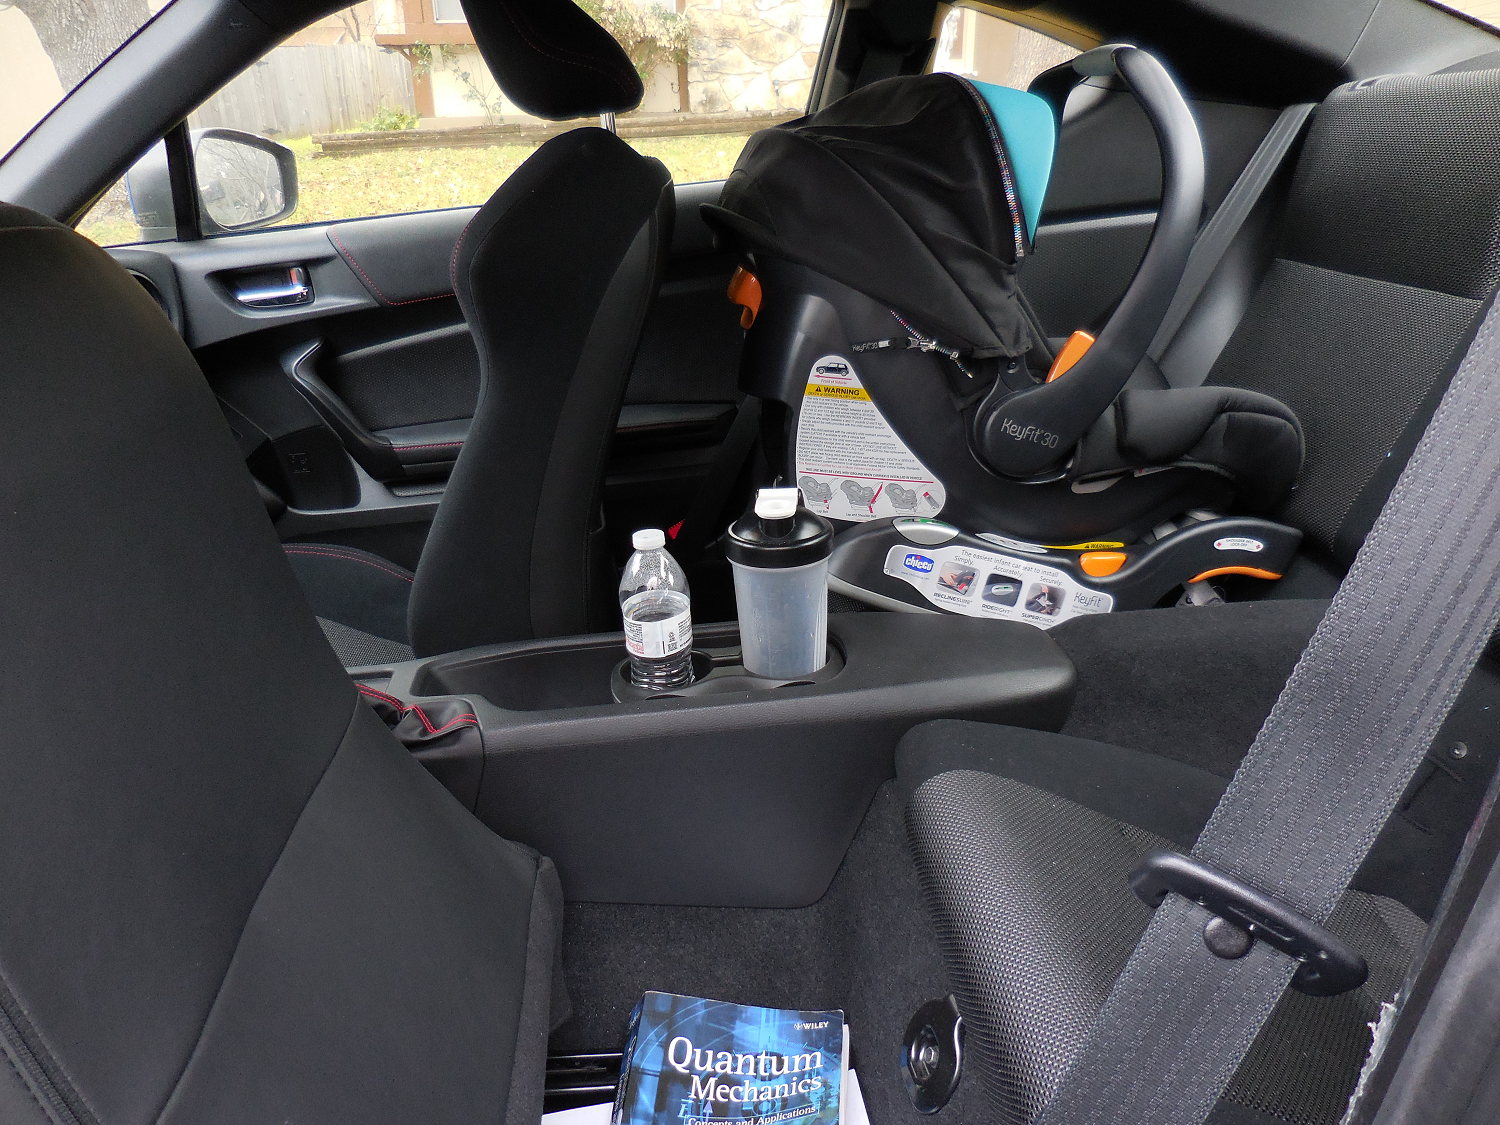 Can an Infant Car Seat Fit in a Subaru BRZ? ~ The Baby Effect